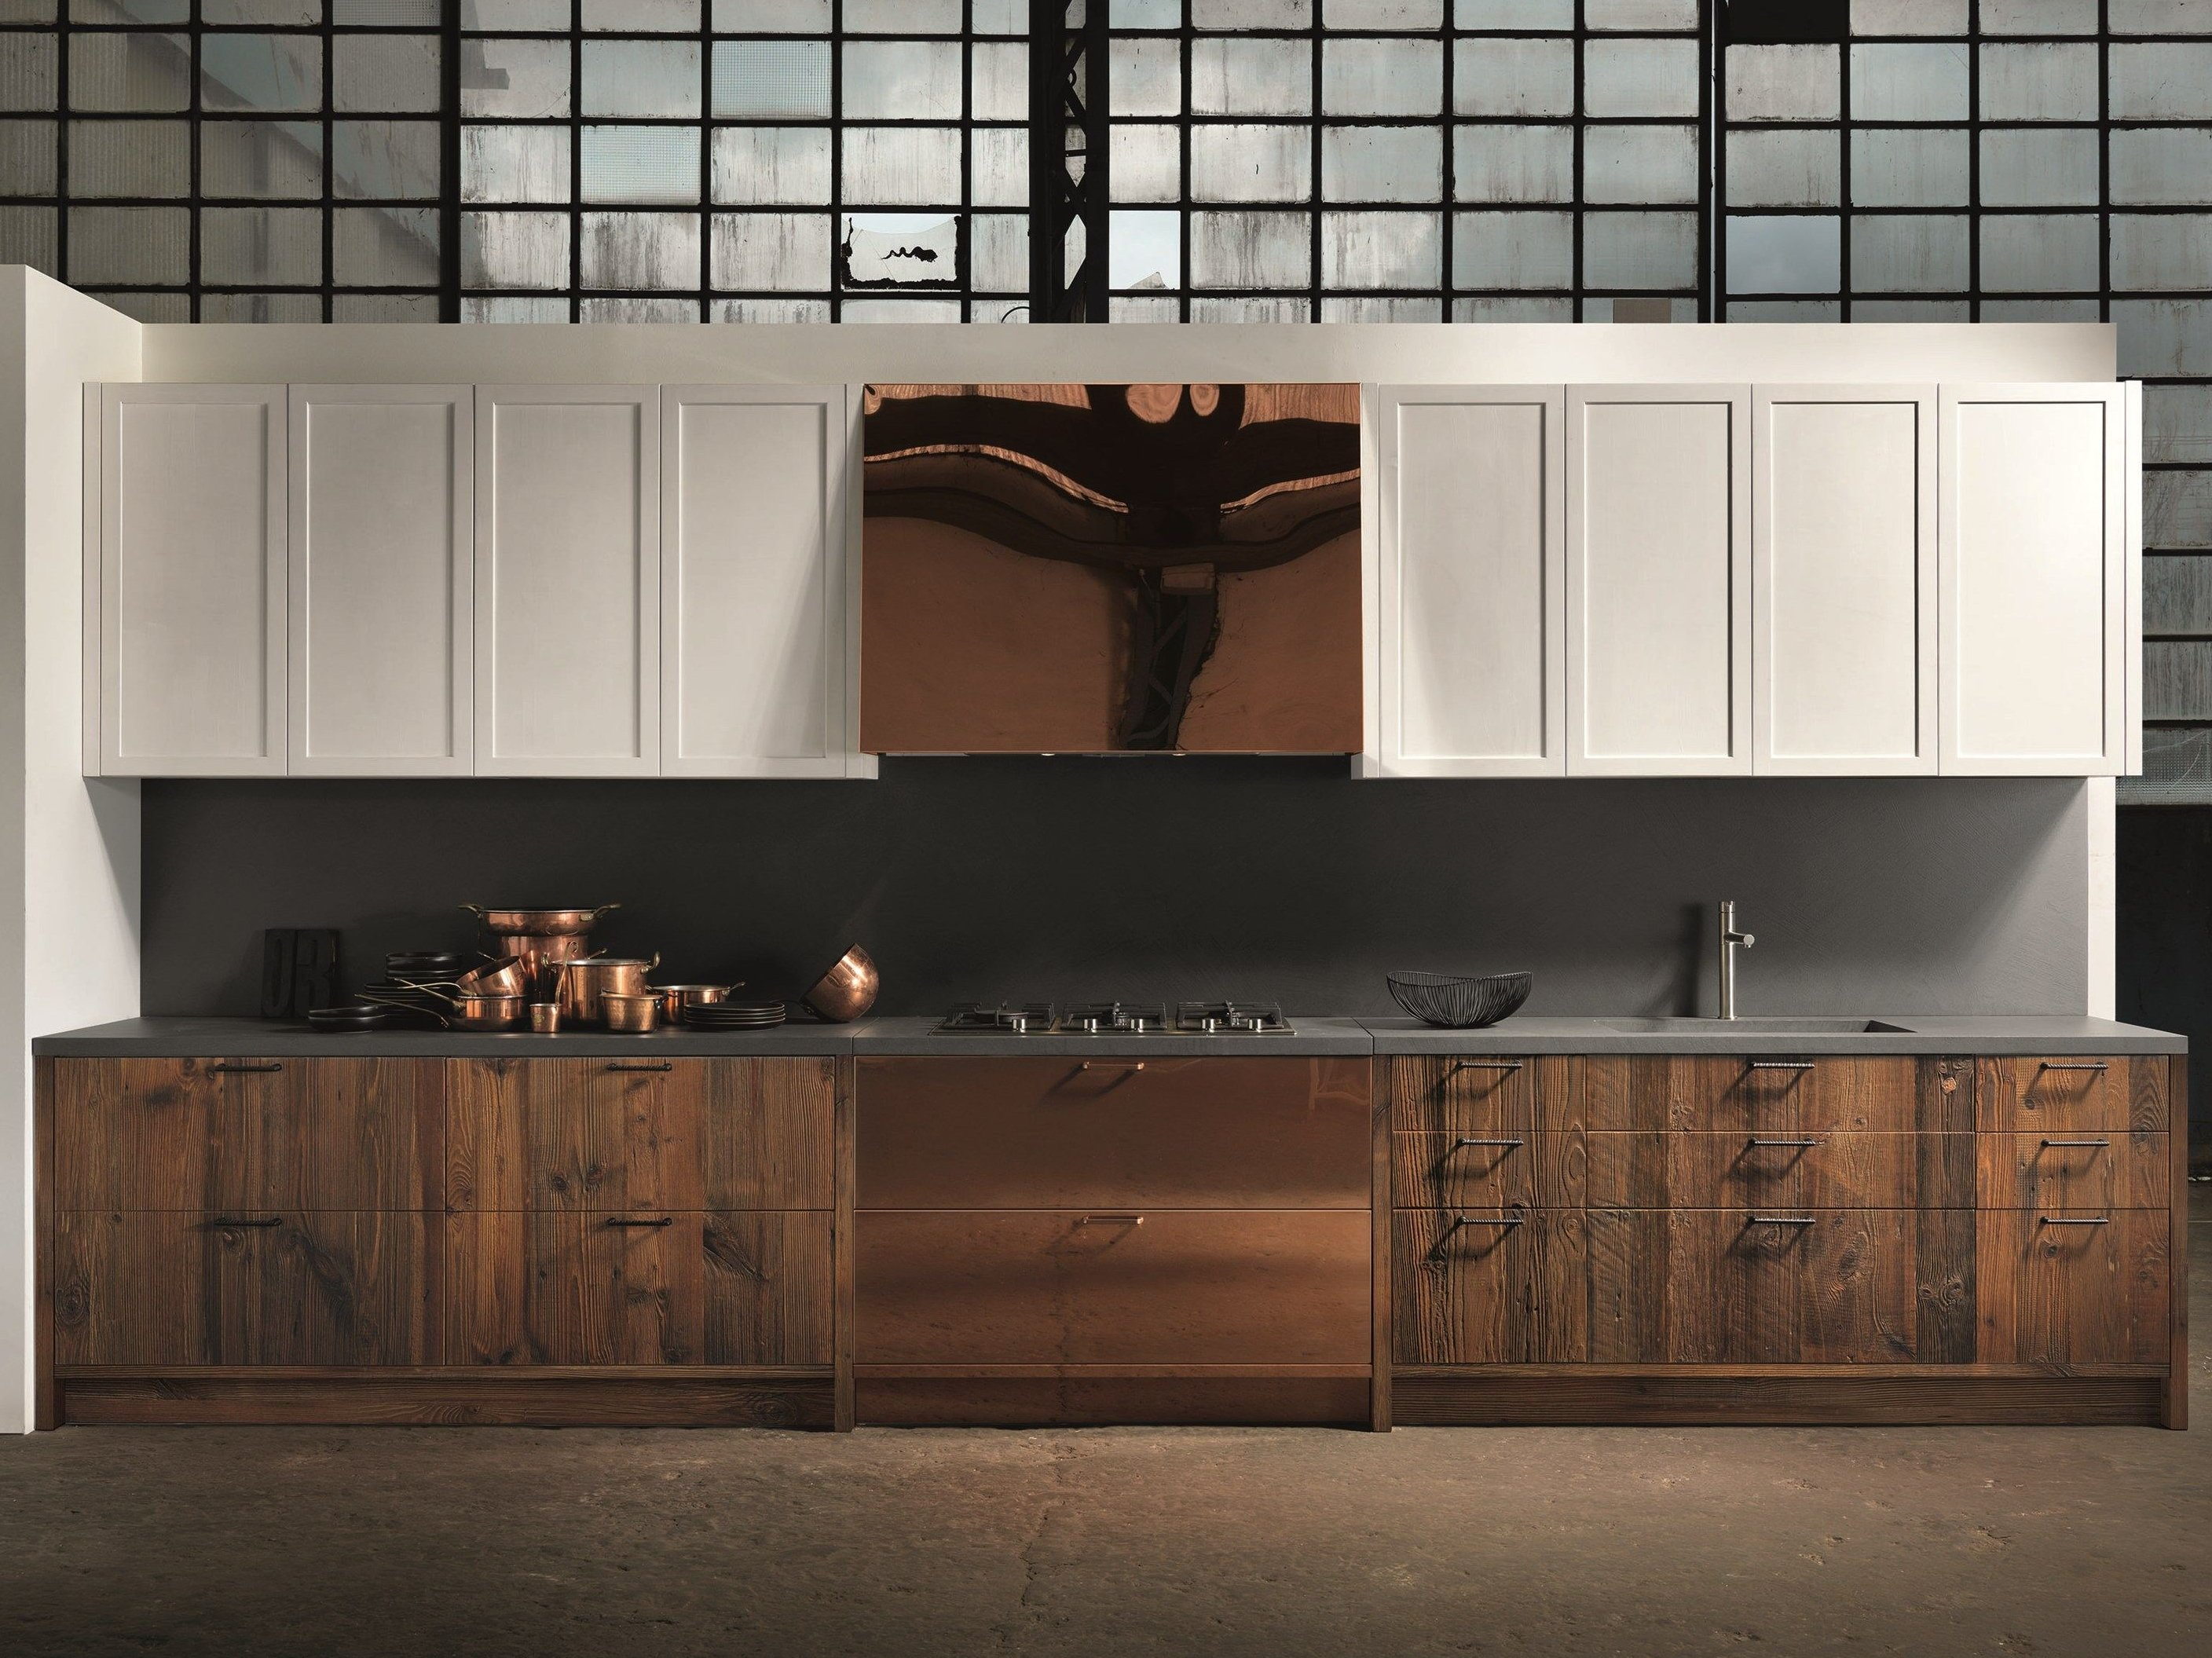 FACTORY | Kitchen Factory Collection By Aster Cucine Design Lorenzo  Granocchia